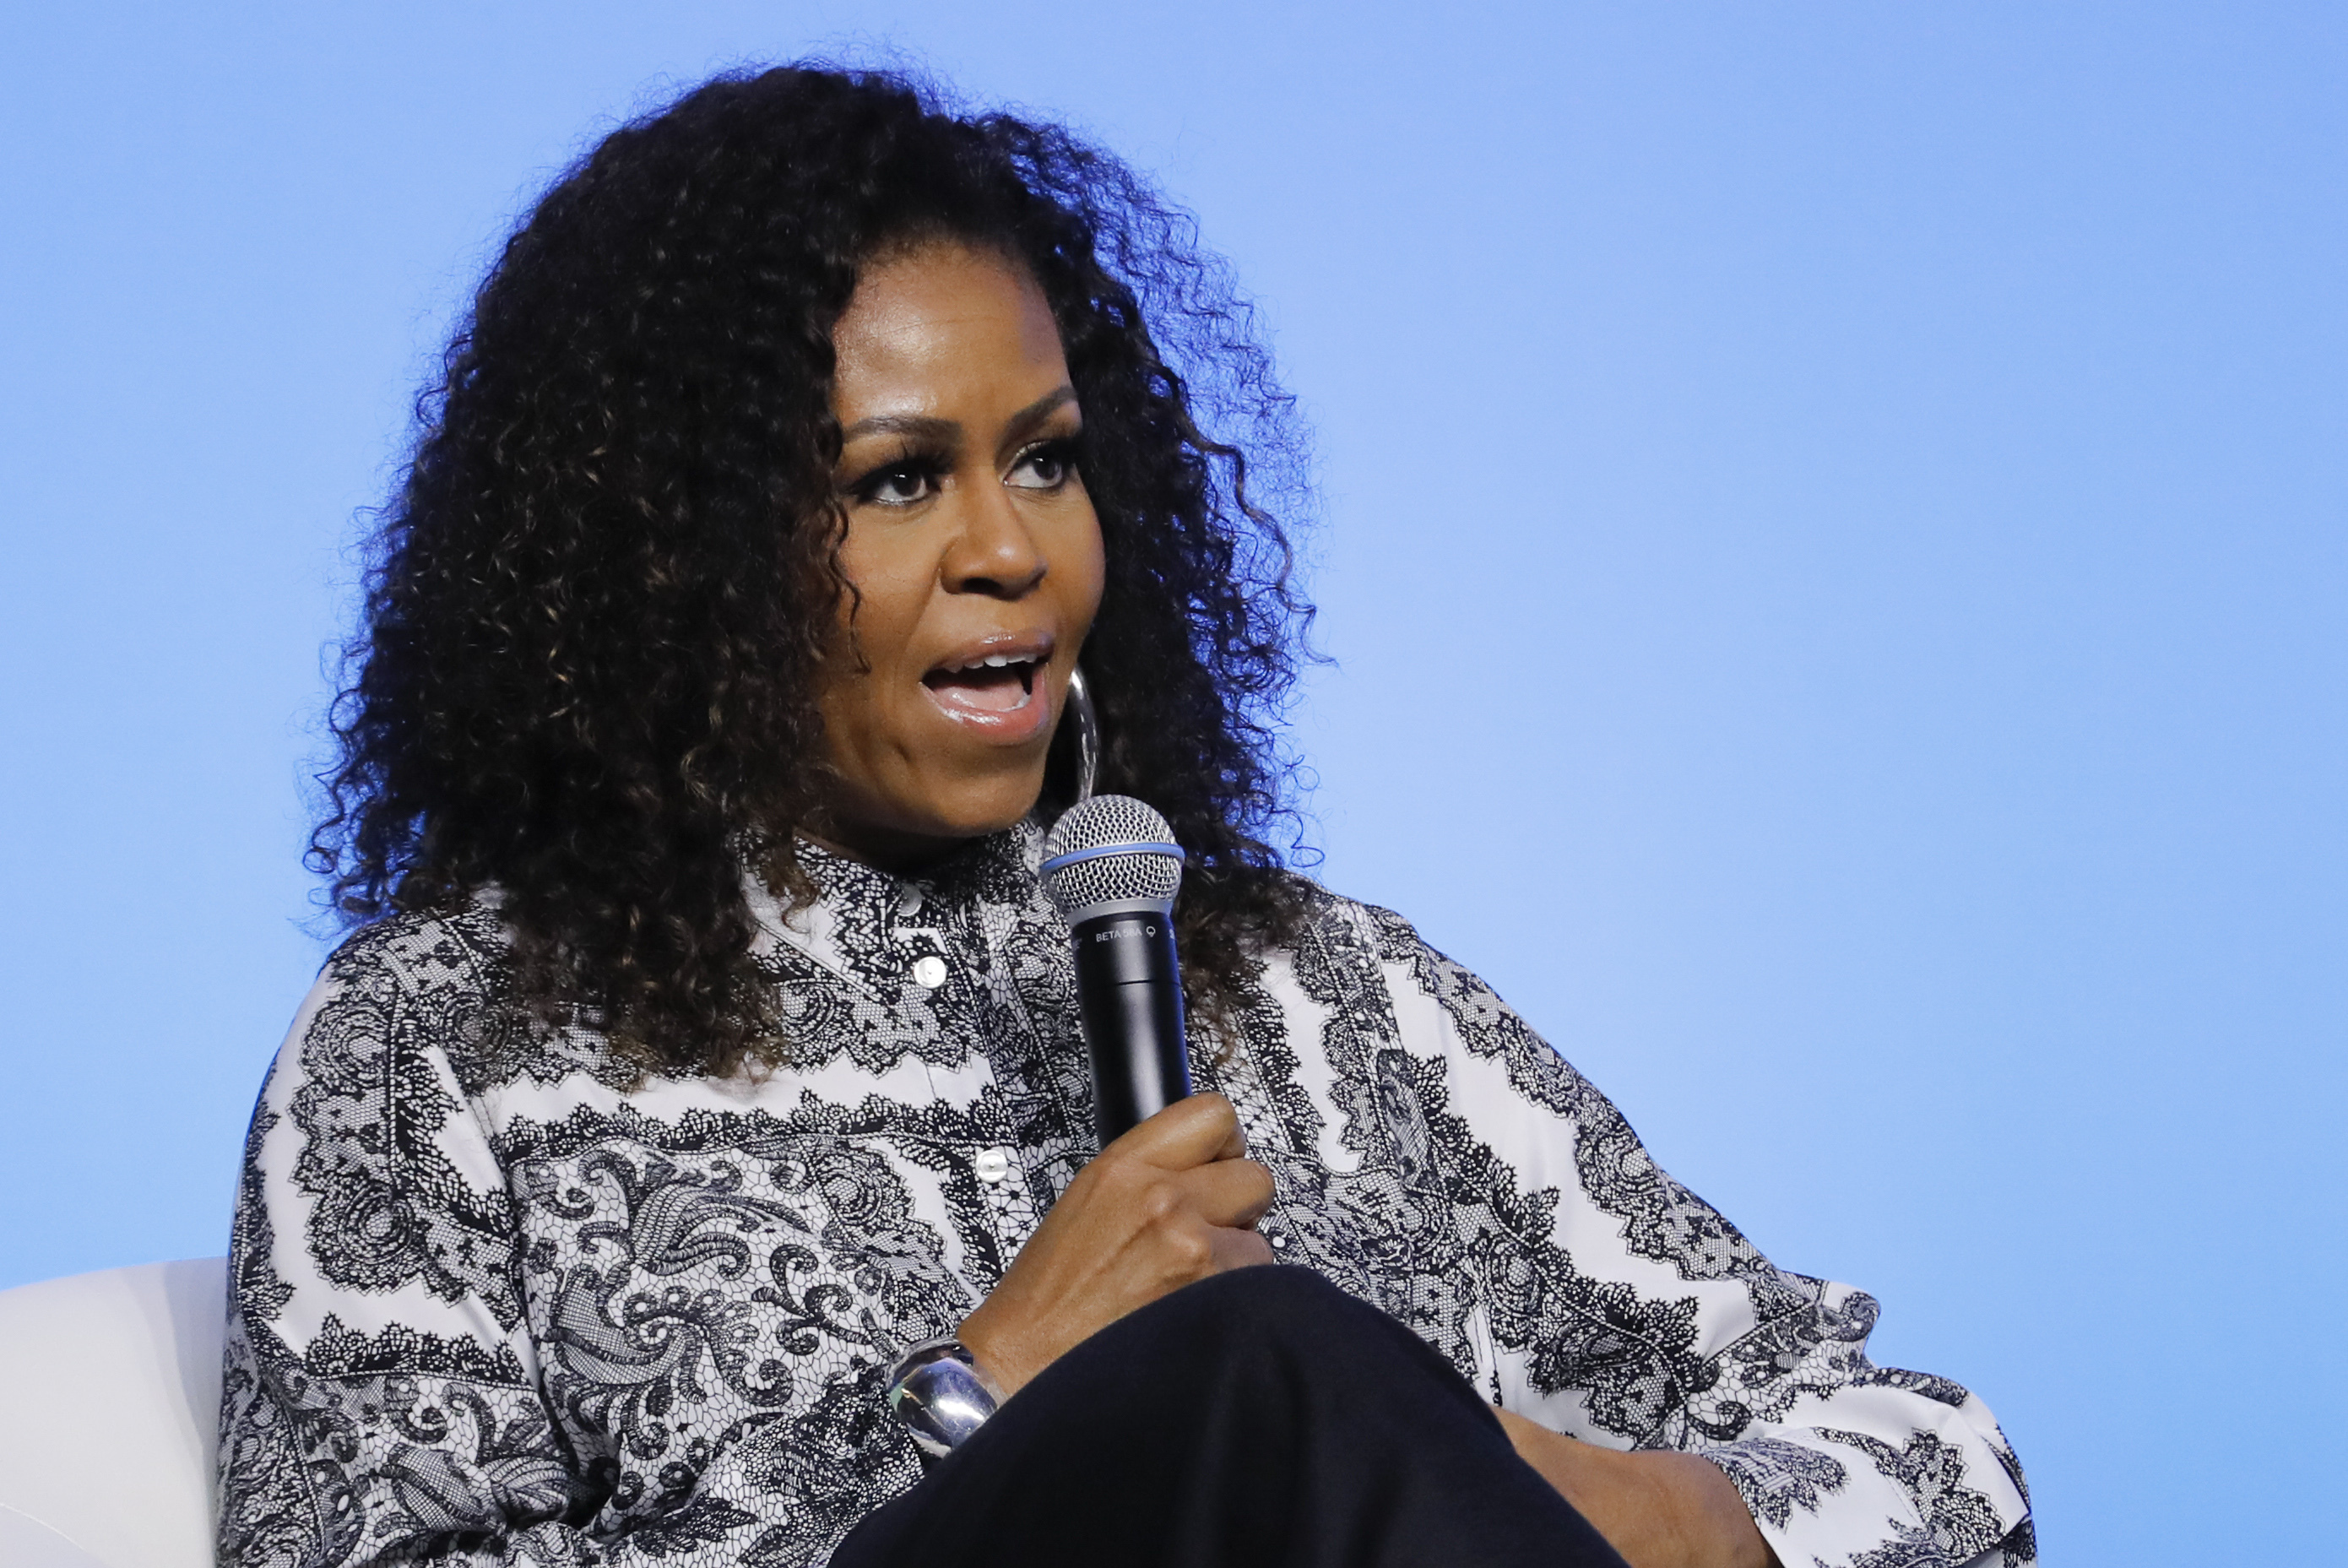 Michelle Obama on George W. Bush friendship: 'Our values are the same'